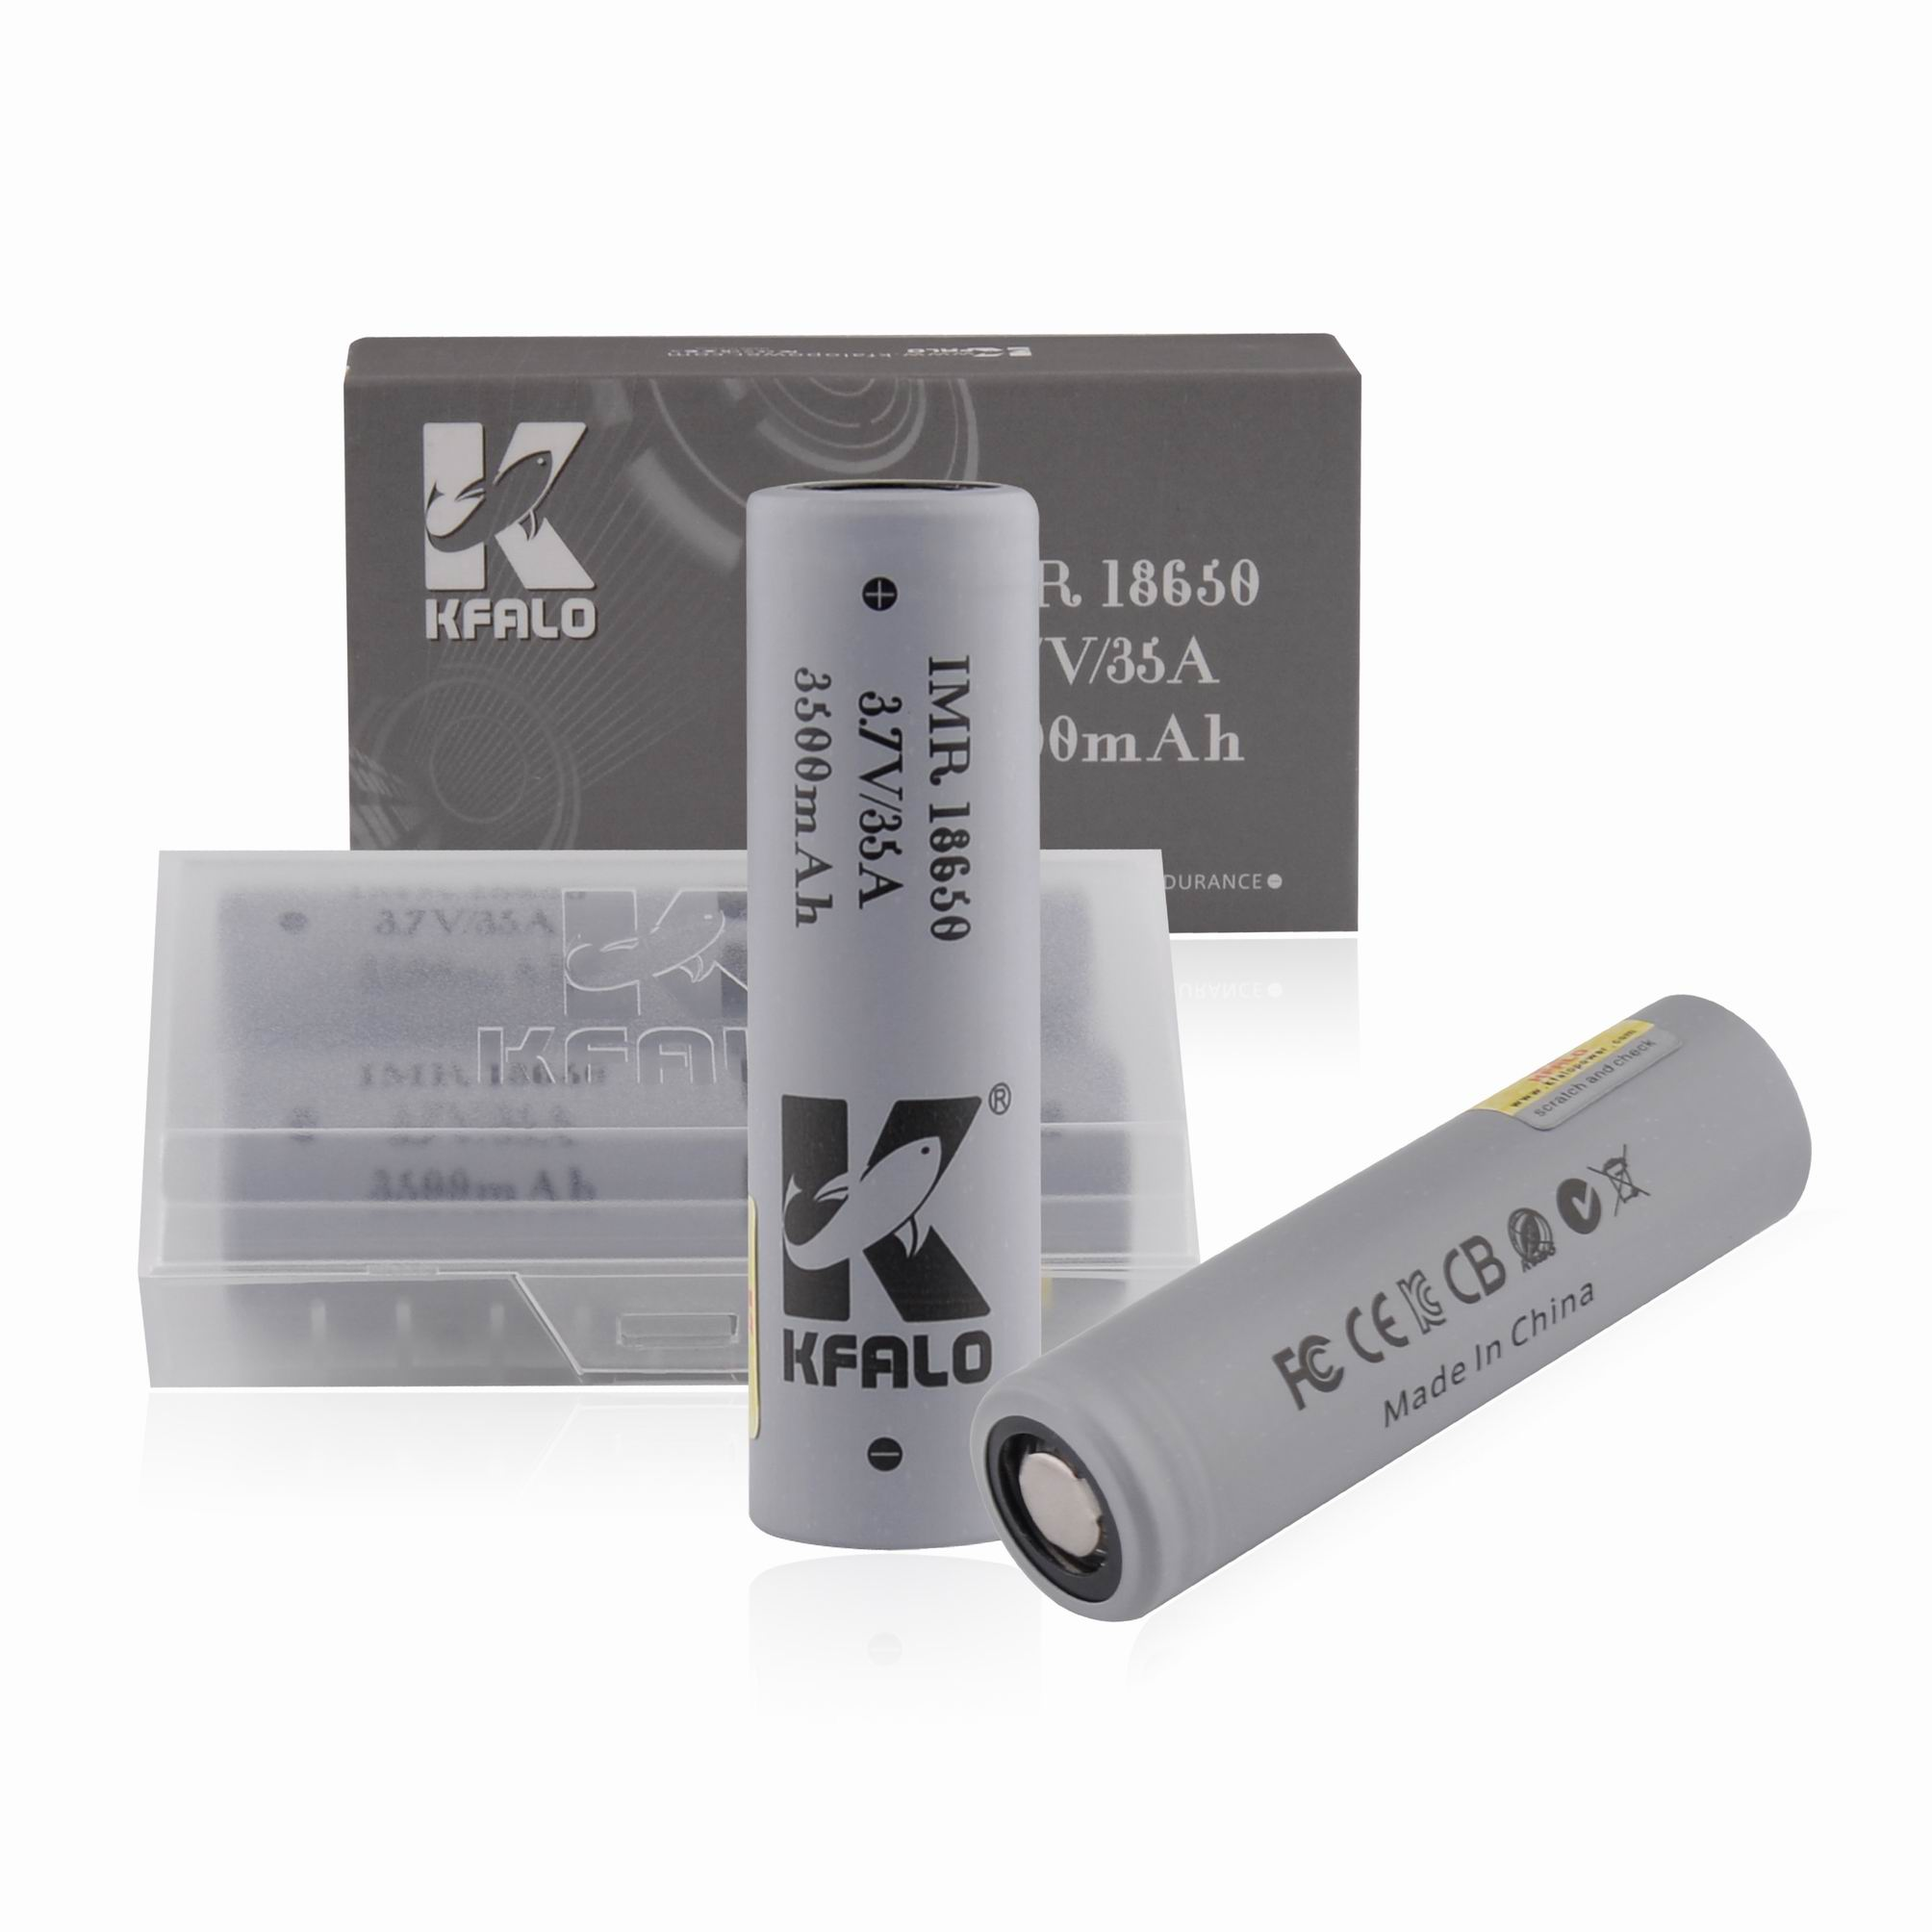 KFALO 18650 3500mAh 35A Li-ion battery for Ebike